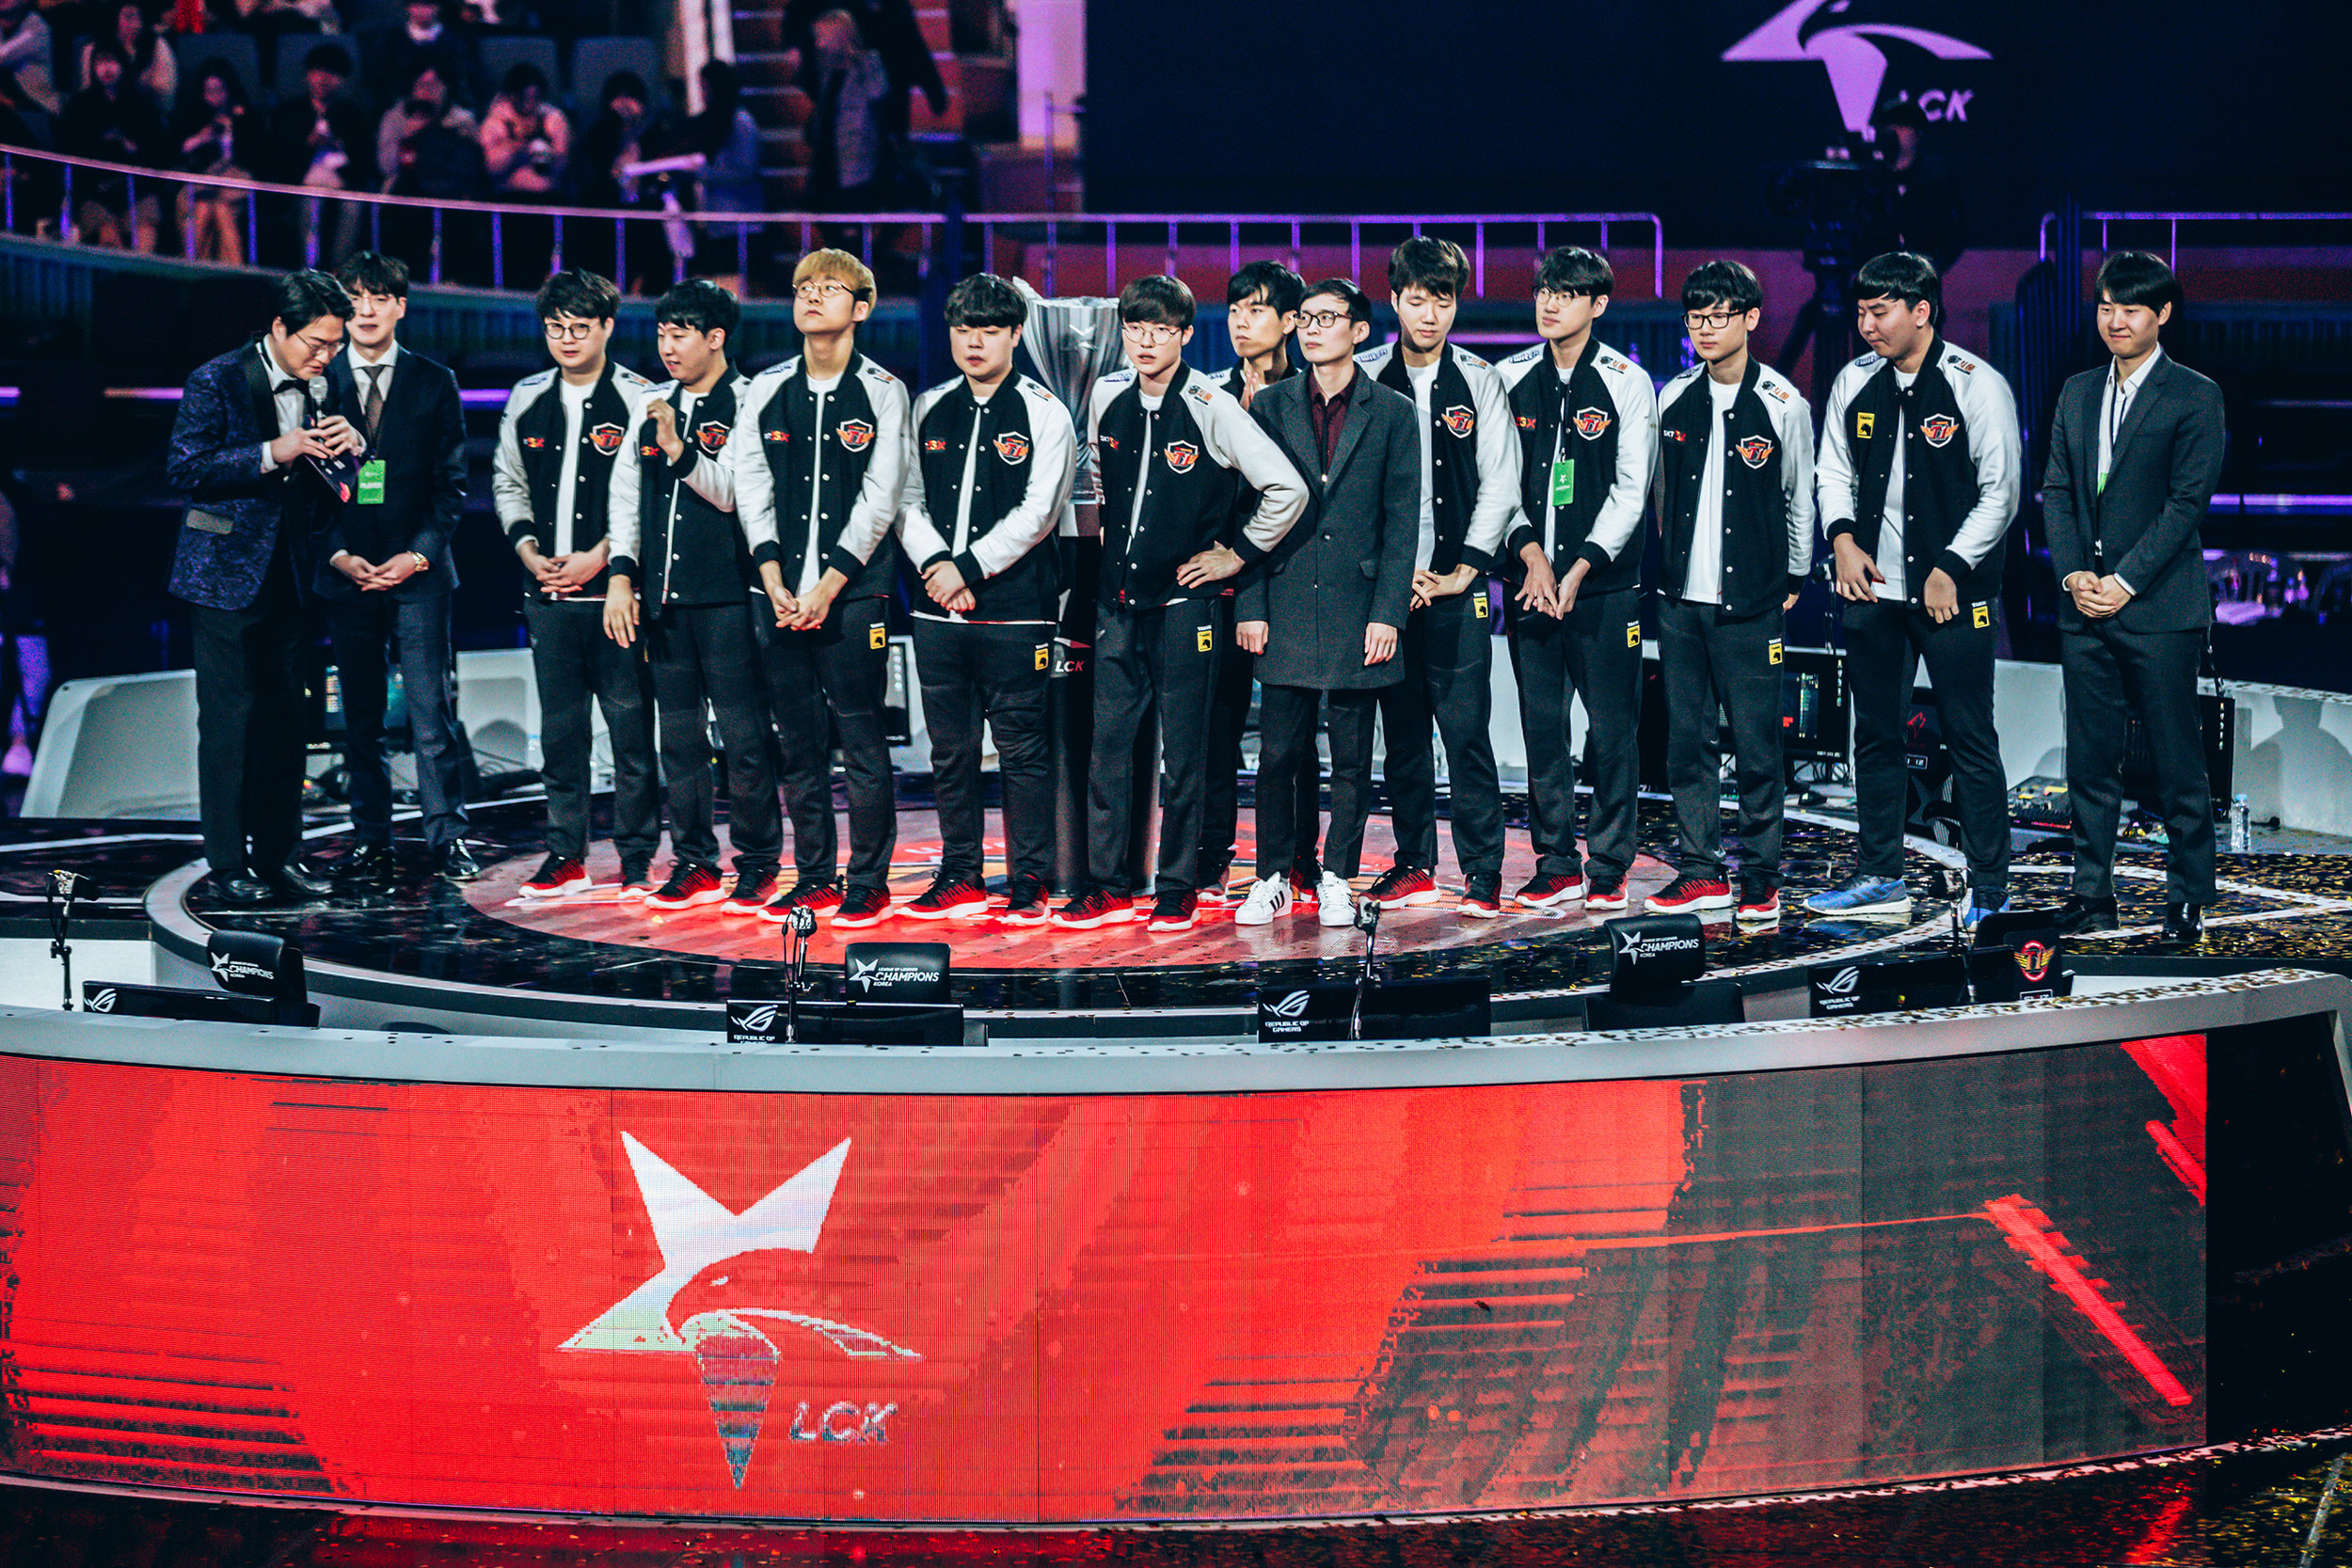 SEOUL, SOUTH KOREA - APRIL 13: Team SK Telecom T1 on stage after winning 3-0 over Griffin at LCK Spring Finals at Jamsil Sports Center on April 13, 2019 in Seoul, Korea. Photo by Timo Verdeil/ESPAT Media